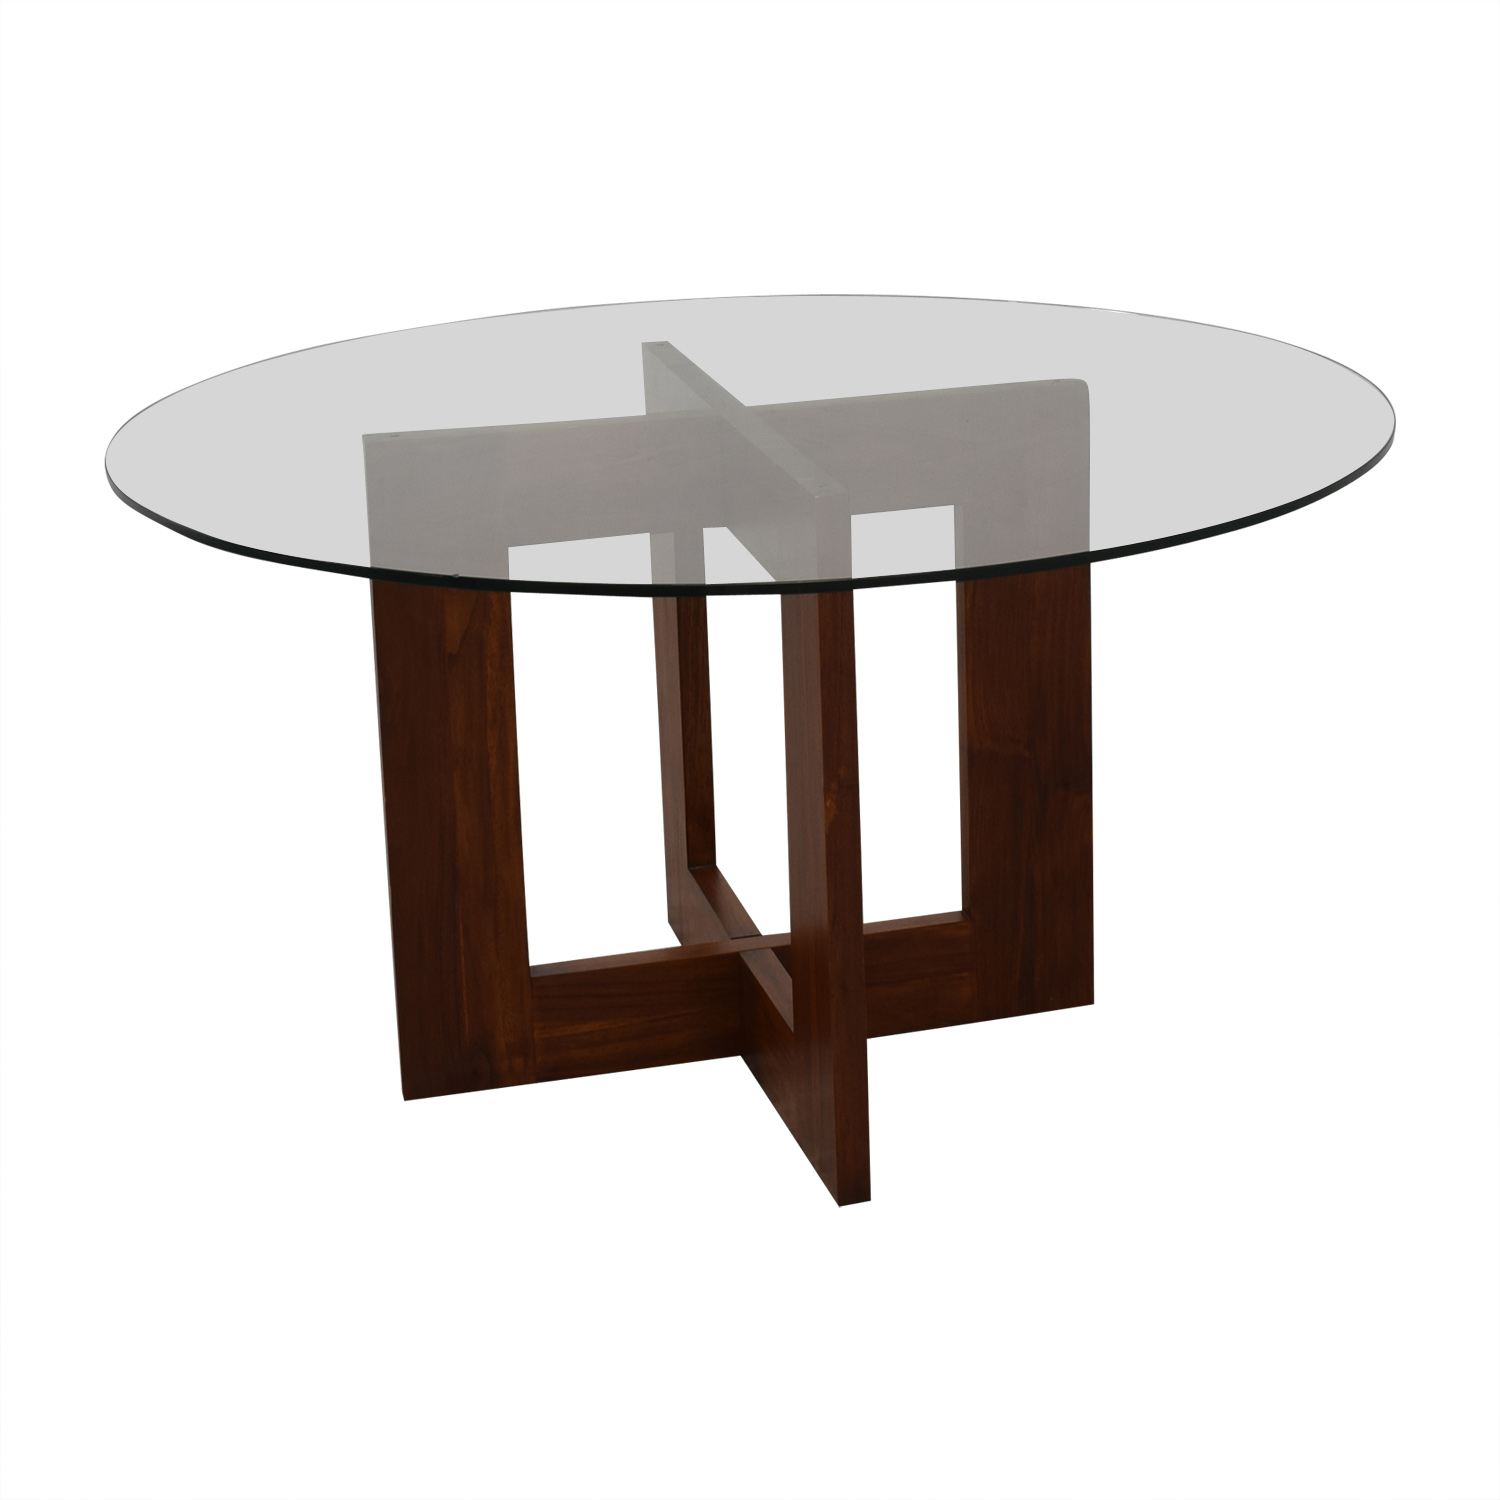 buy Crate & Barrel Crate & Barrel Round Glass Table online